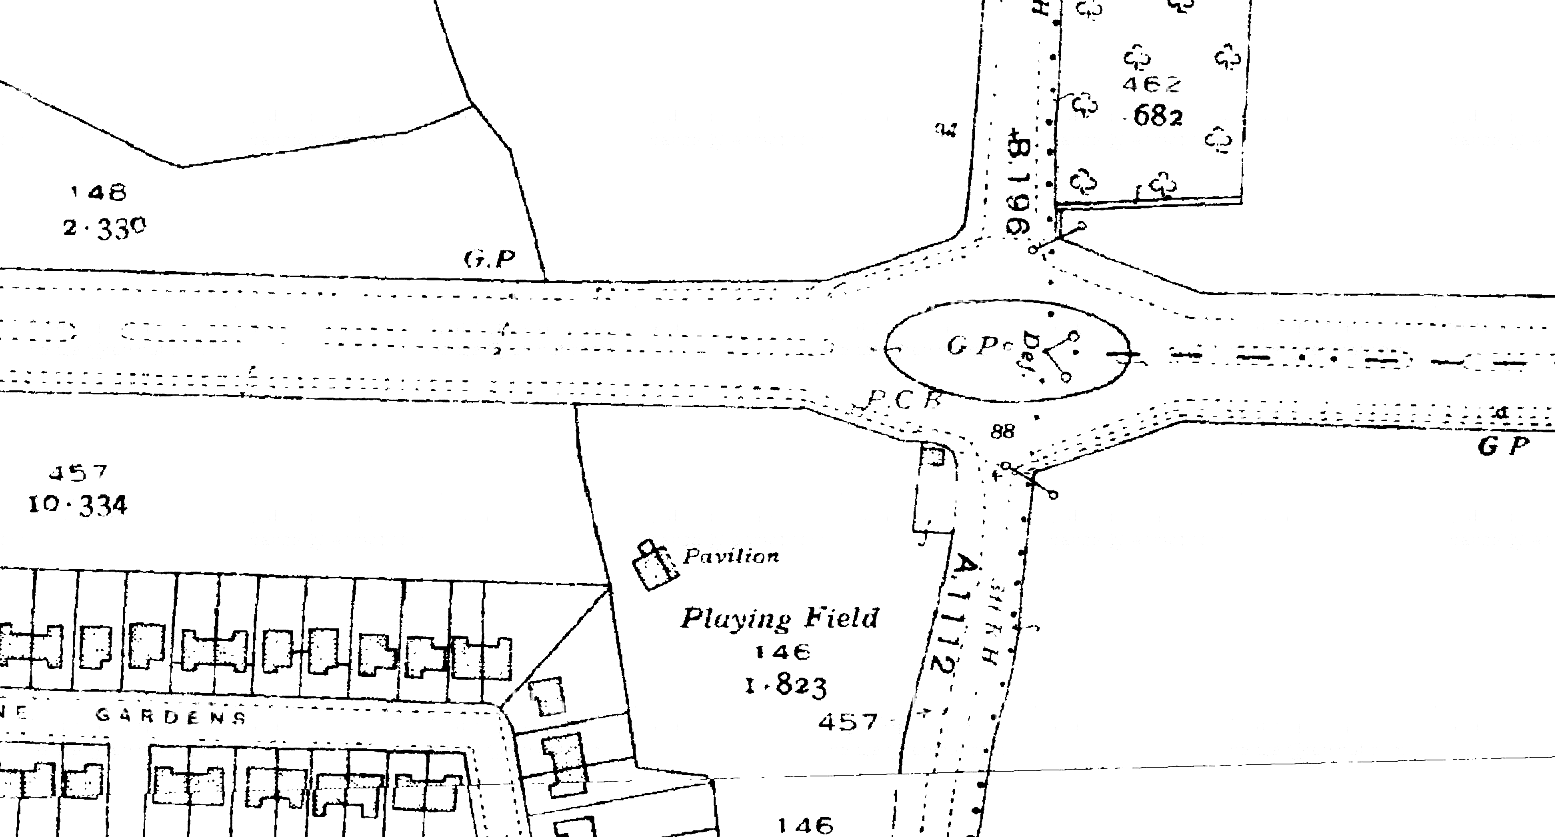 K19--Moby Dick Roundabout, Chadwell Heath Box--1938-1939 OS Map Extract 1-2500.png